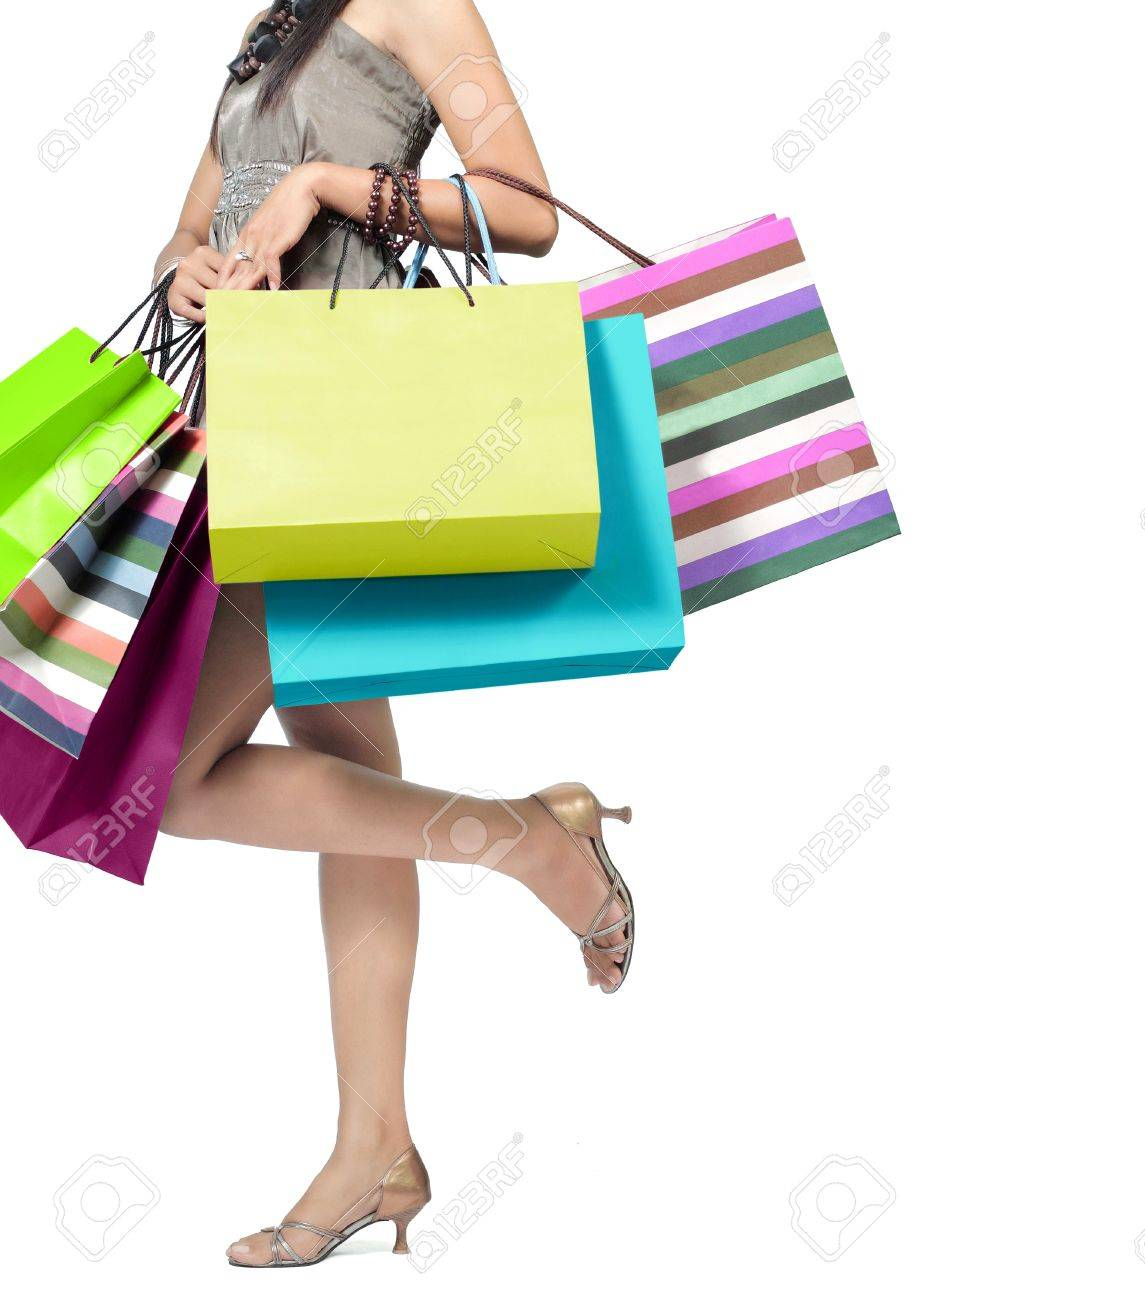 Beautiful Woman With A Lot Of Shopping Bags Stock Photo, Picture ...